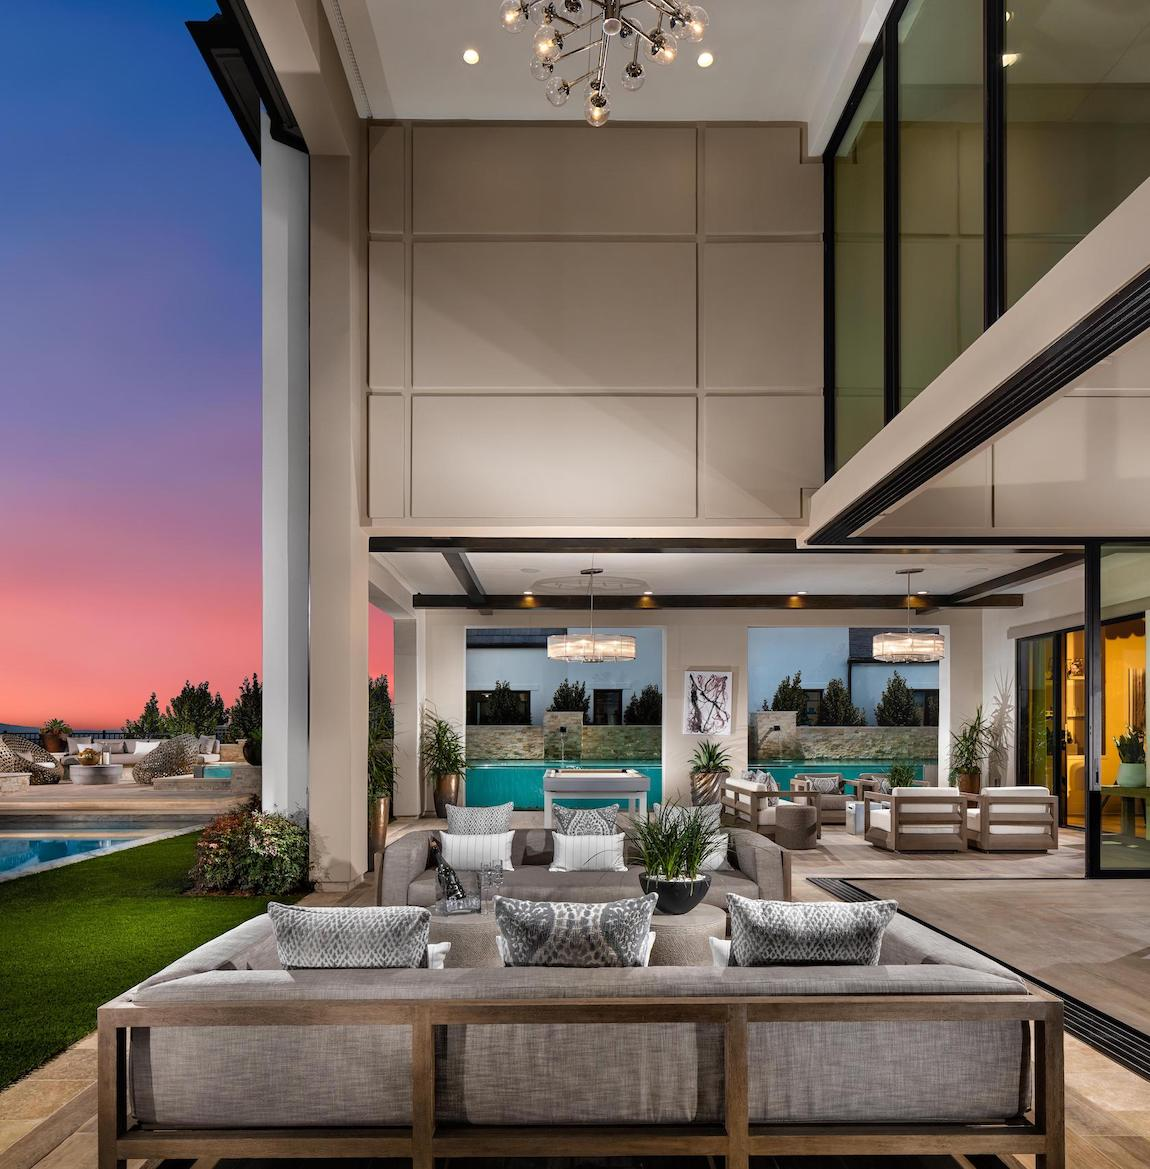 Luxury patio with tall ceilings and spacious lounge area